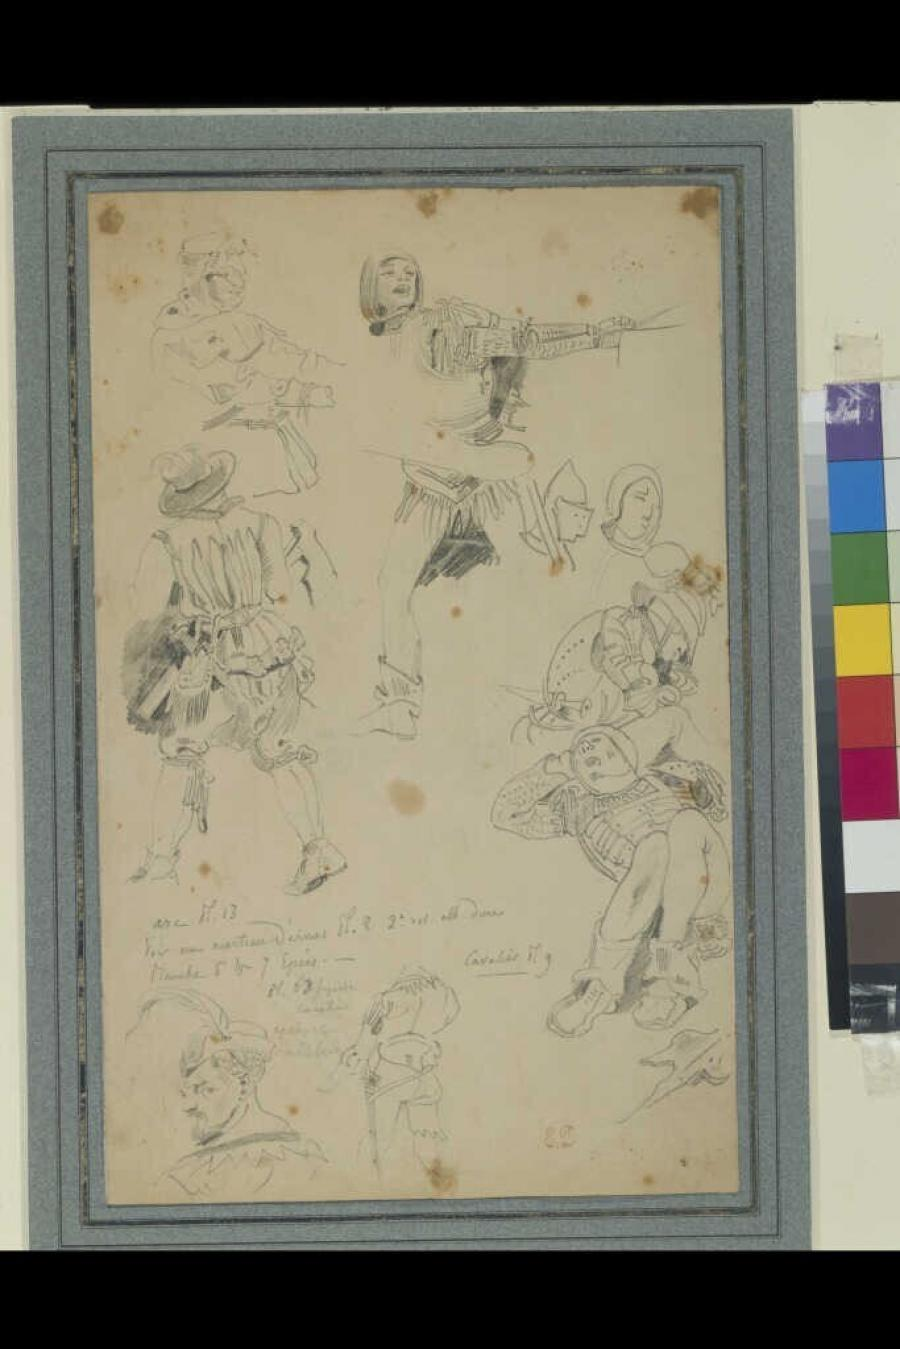 Study Sheet with Sketches after Dürer